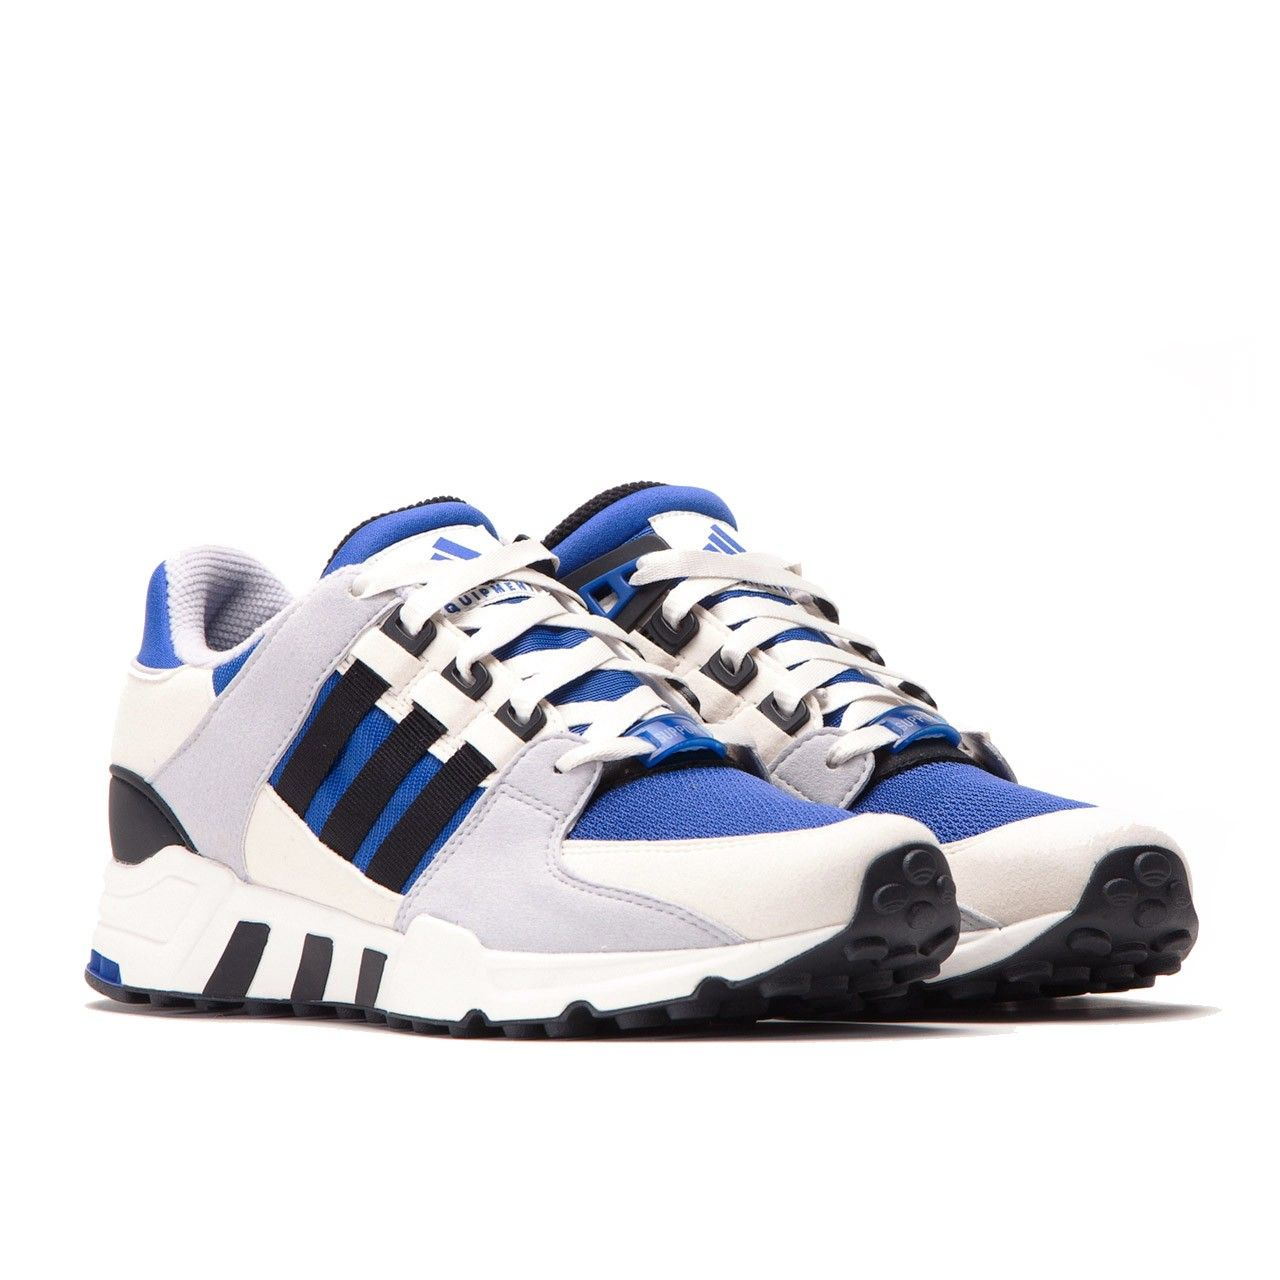 adidas Equipment Support ADV EQT Black Turbo Red Limited Men